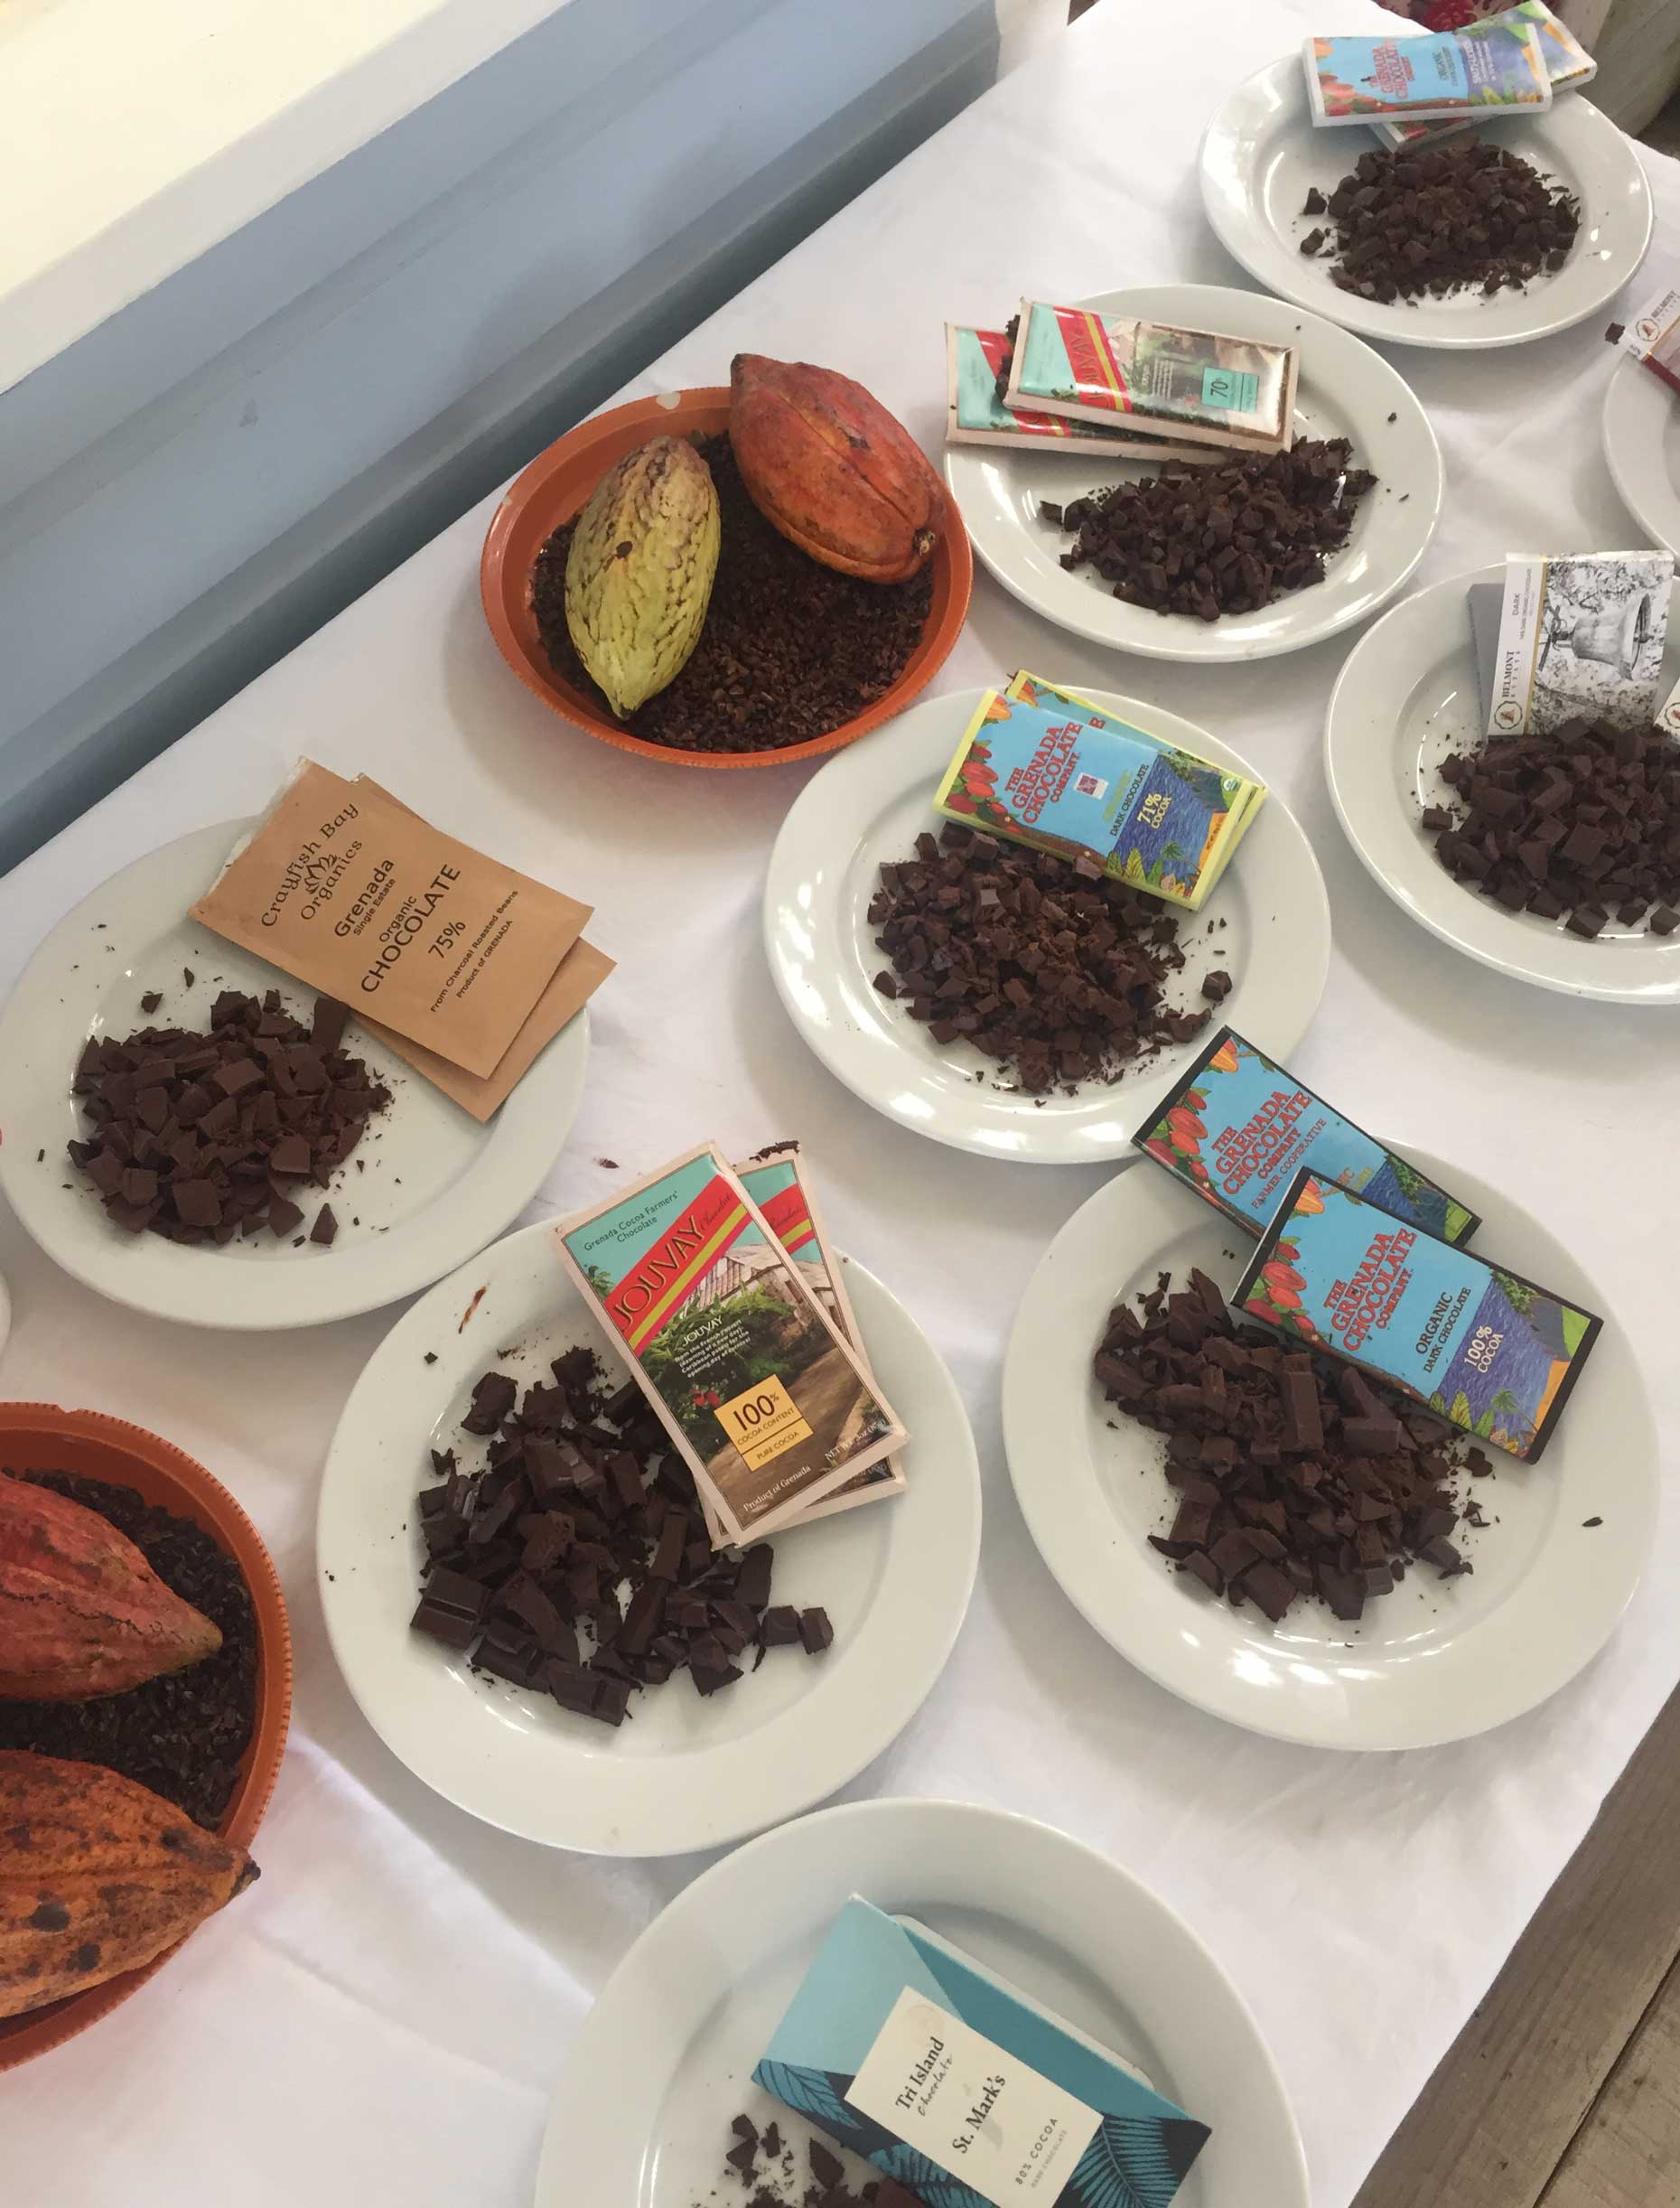 Chocolate tasting at the annual Grenada Chocolate Festival